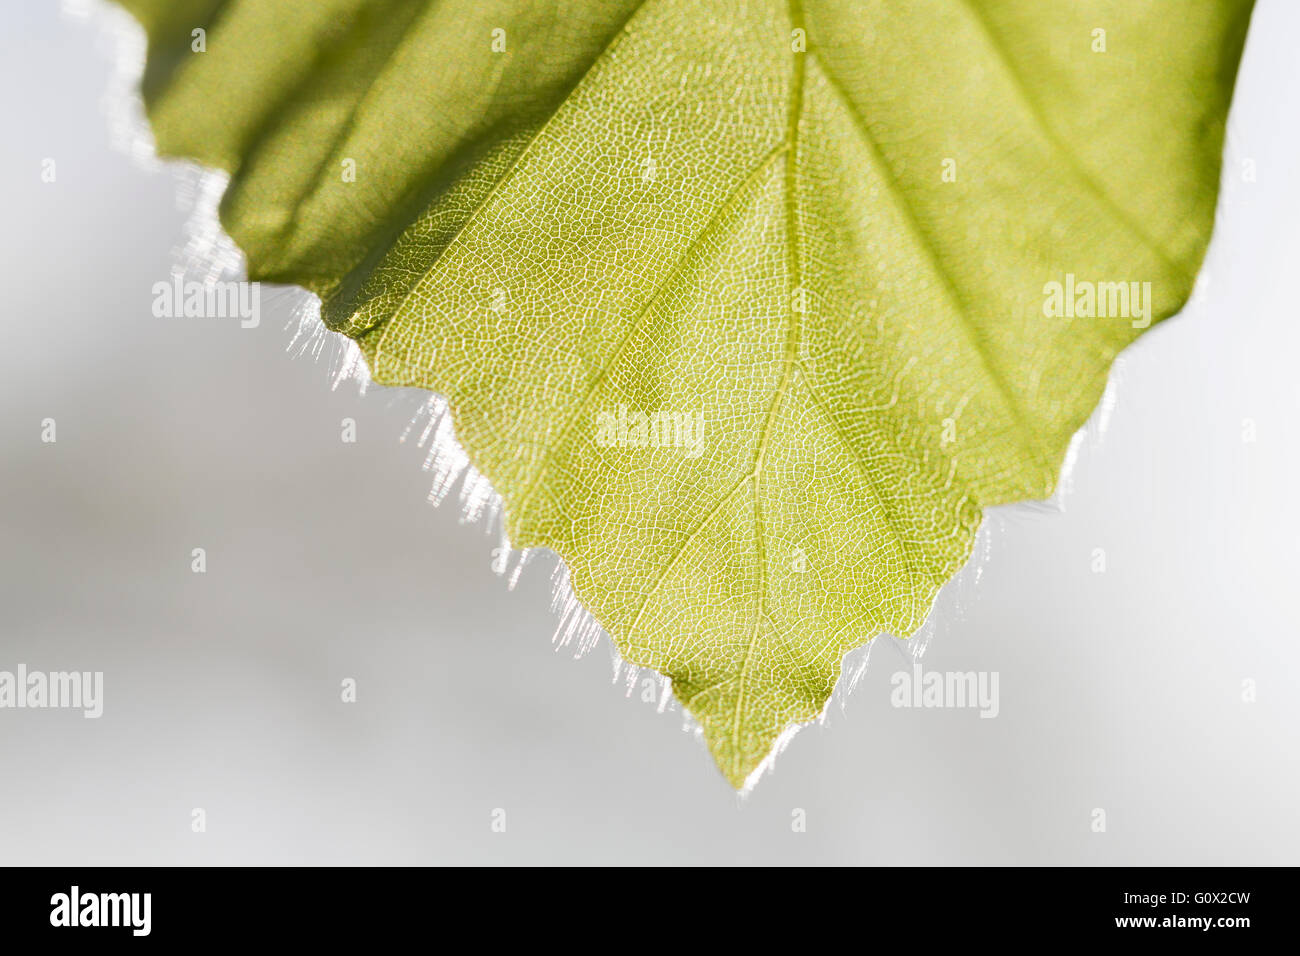 Macro image of an Ash tree leaf tip showing leaf structure with hairs and venation. - Stock Image